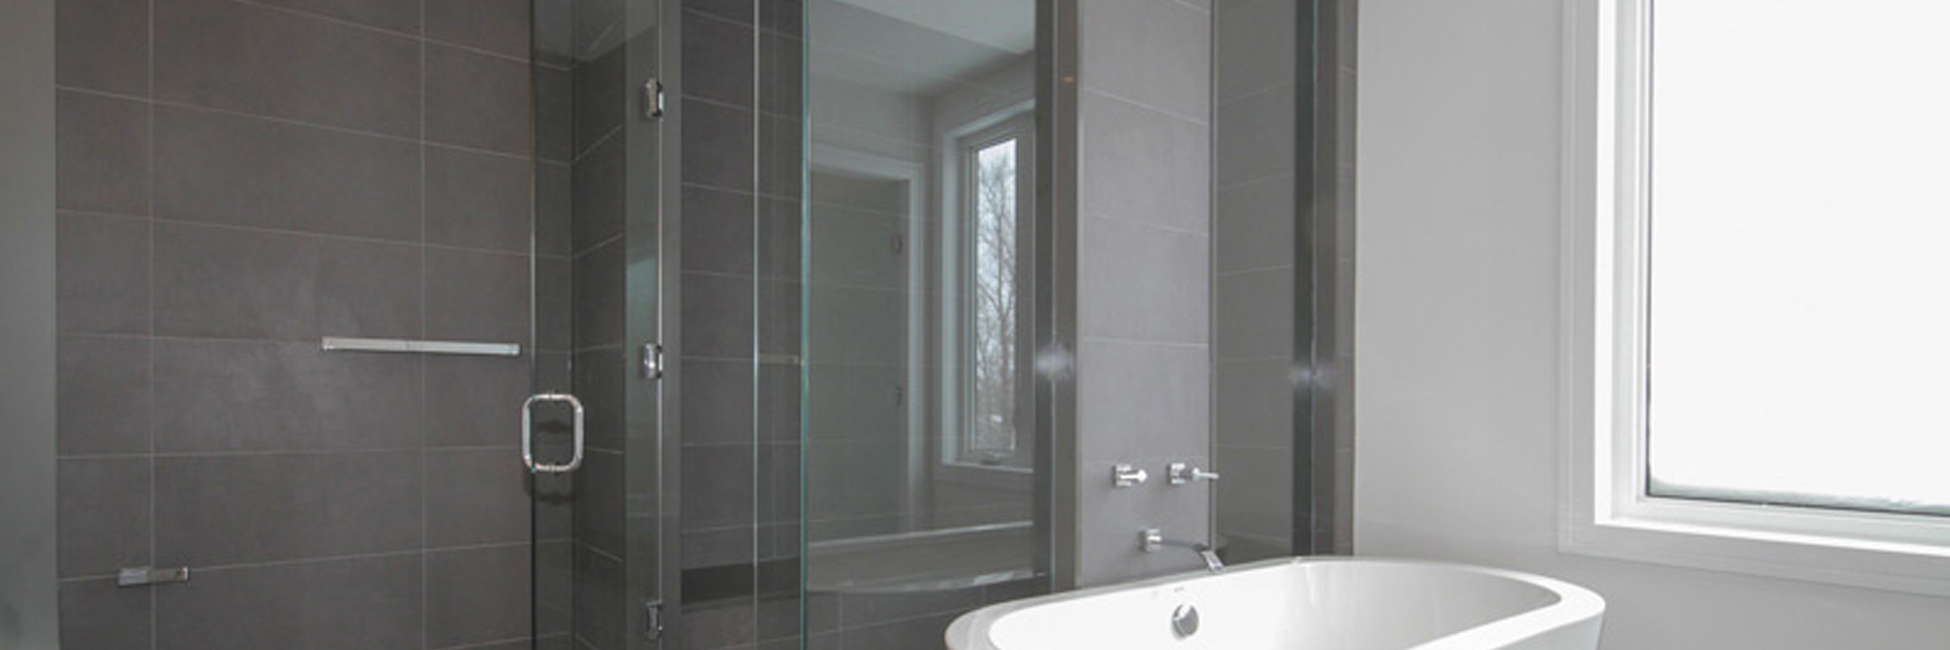 frame shower doors enclosures w and door glass system enclosure fun company services western